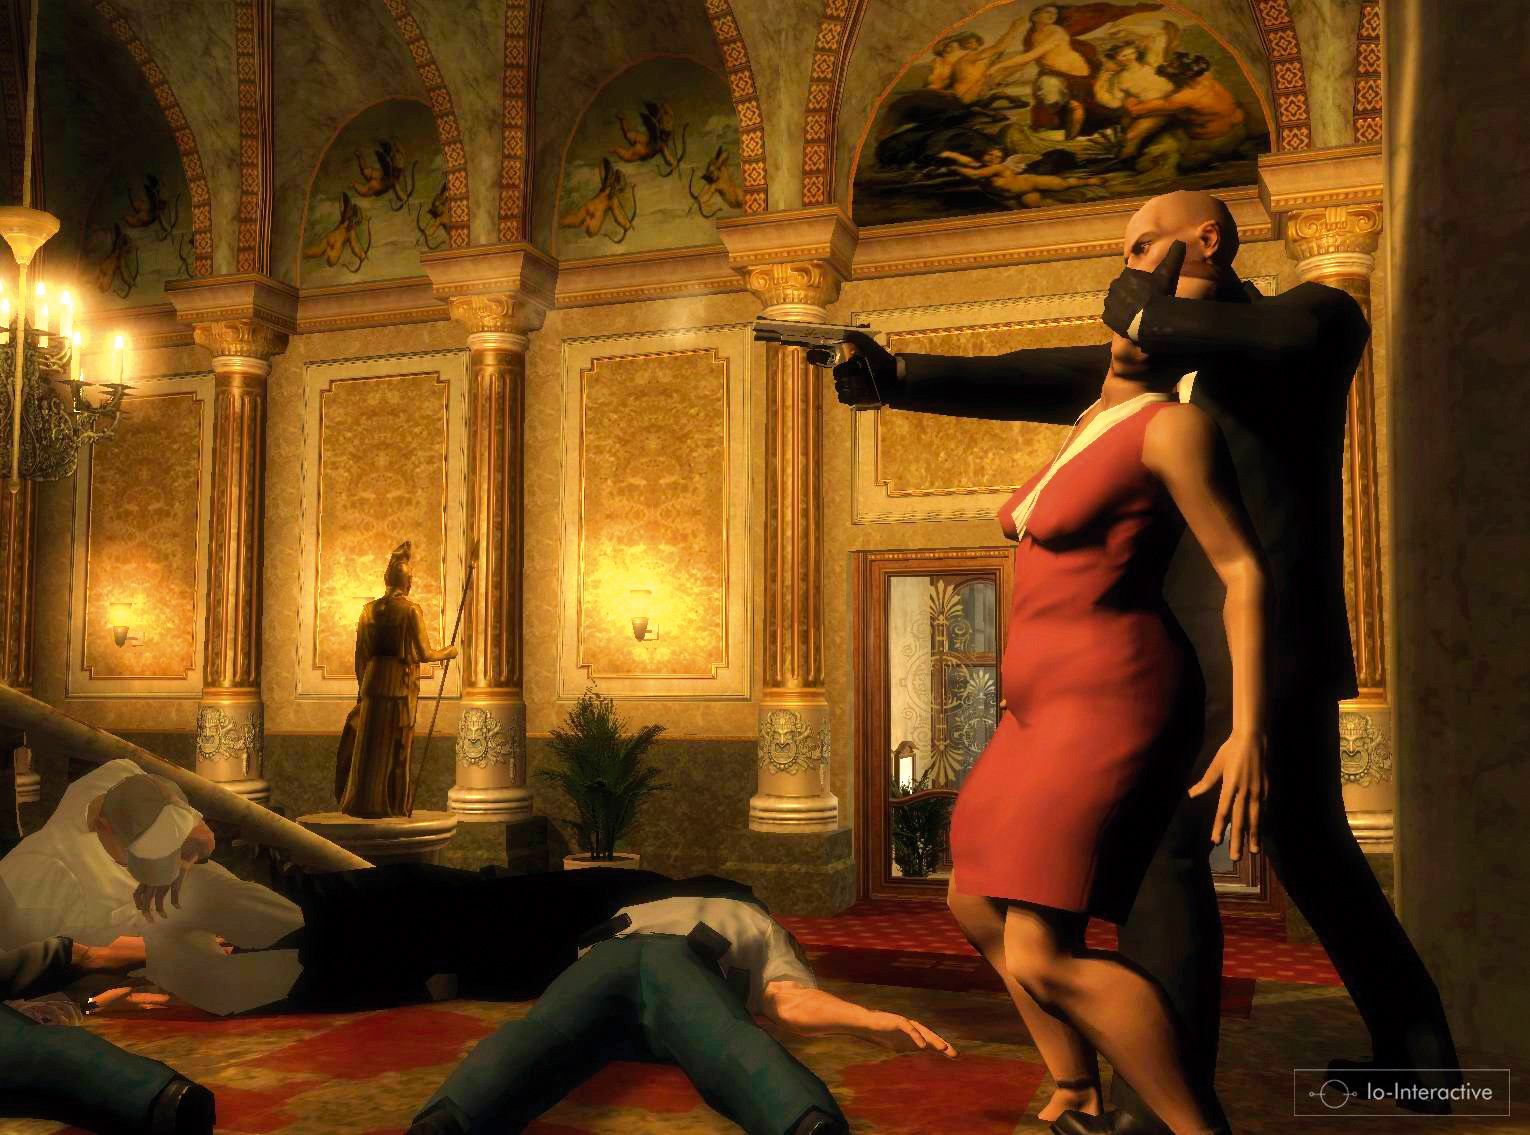 Hitman blood money nude mod hardcore picture